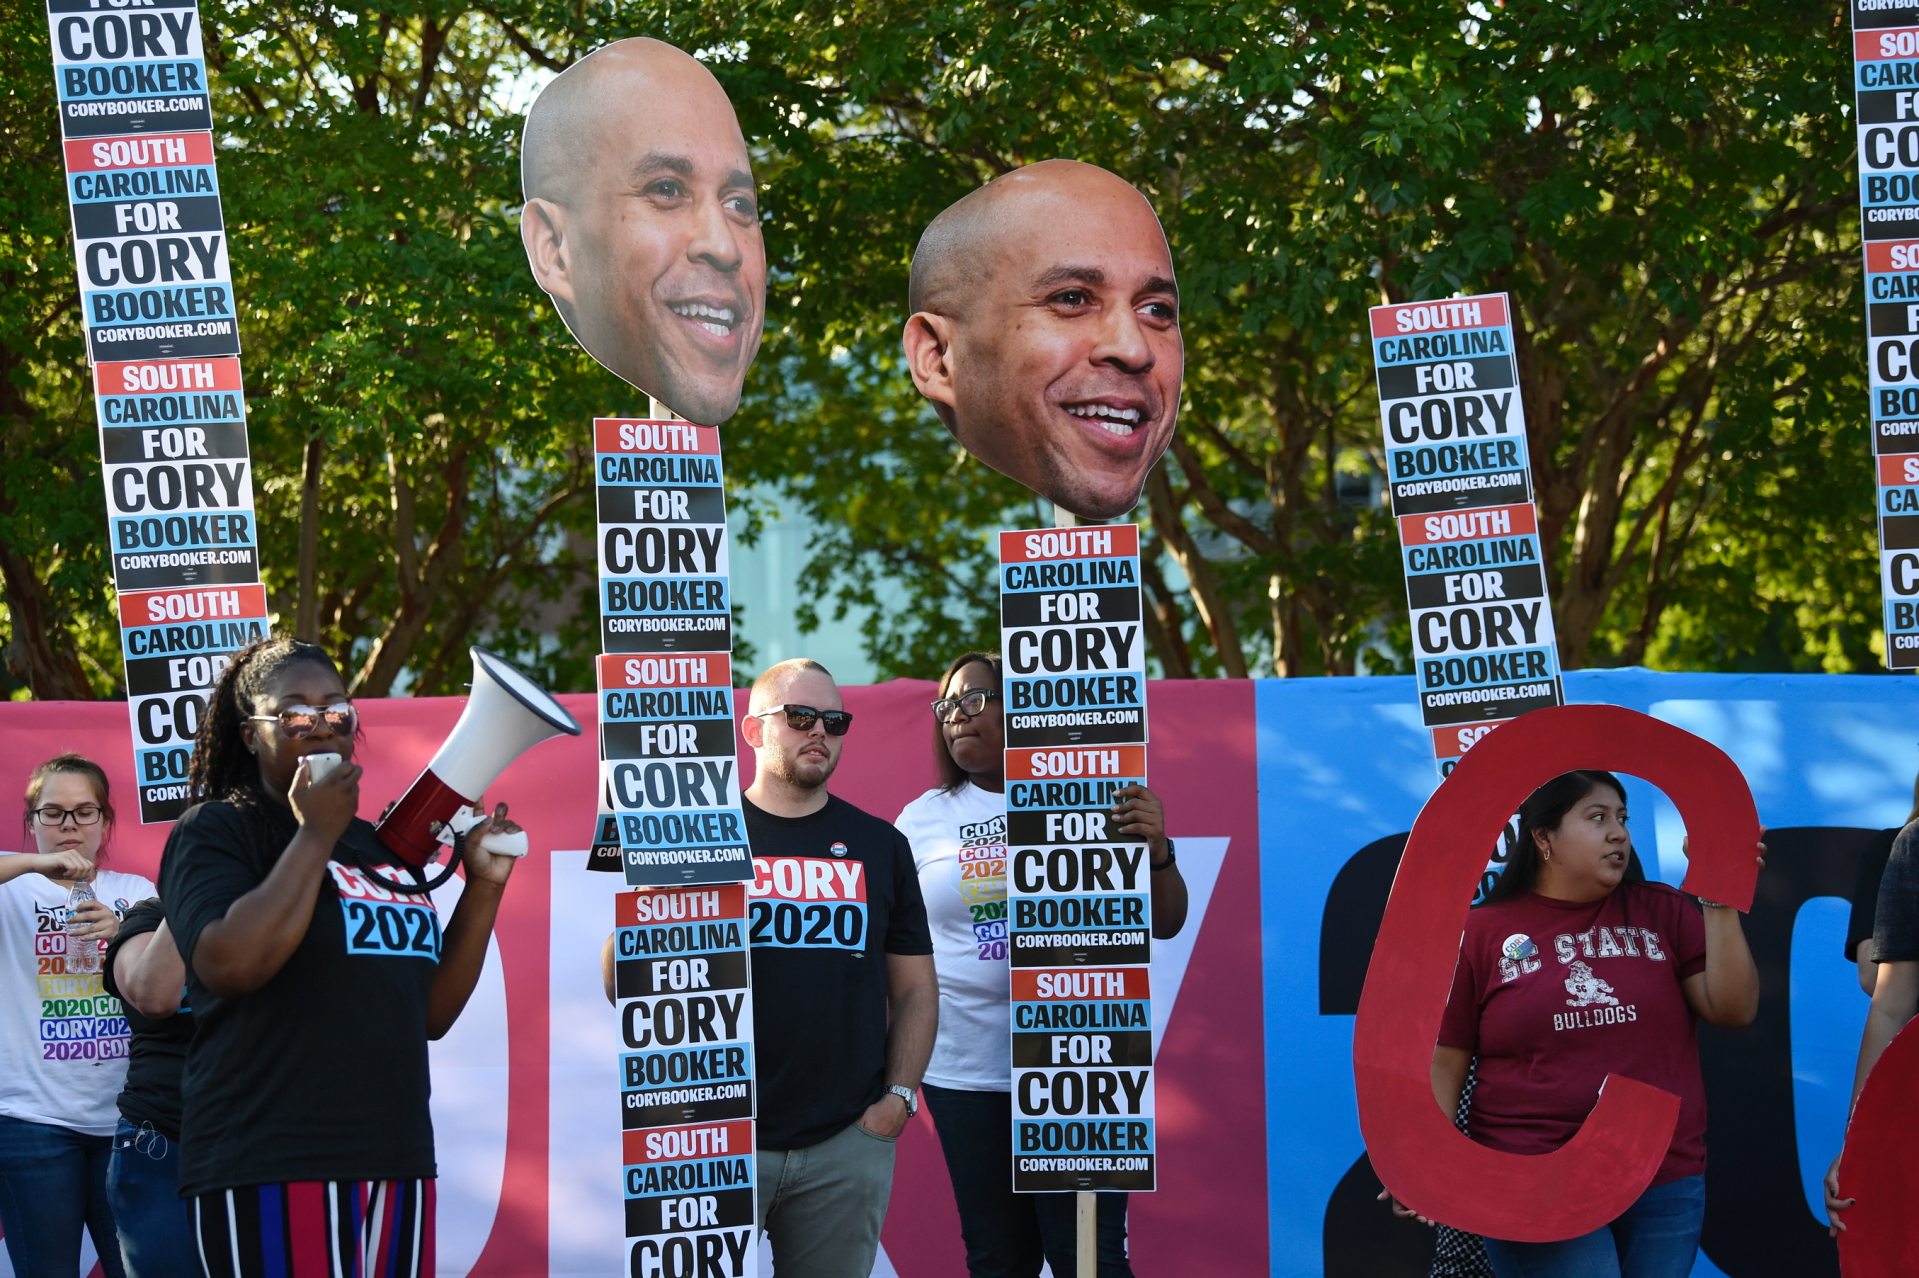 Westlake Legal Group ContentBroker_contentid-6e7abb36dce748719903a55add135a95 Liz Peek: Cory Booker runs away from school reform and straight into the arms of the teachers unions Liz Peek fox-news/us/education fox-news/politics/2020-presidential-election fox-news/person/cory-booker fox-news/opinion fox news fnc/opinion fnc article 6ada817c-30a8-5075-81a7-8765d33c21a1